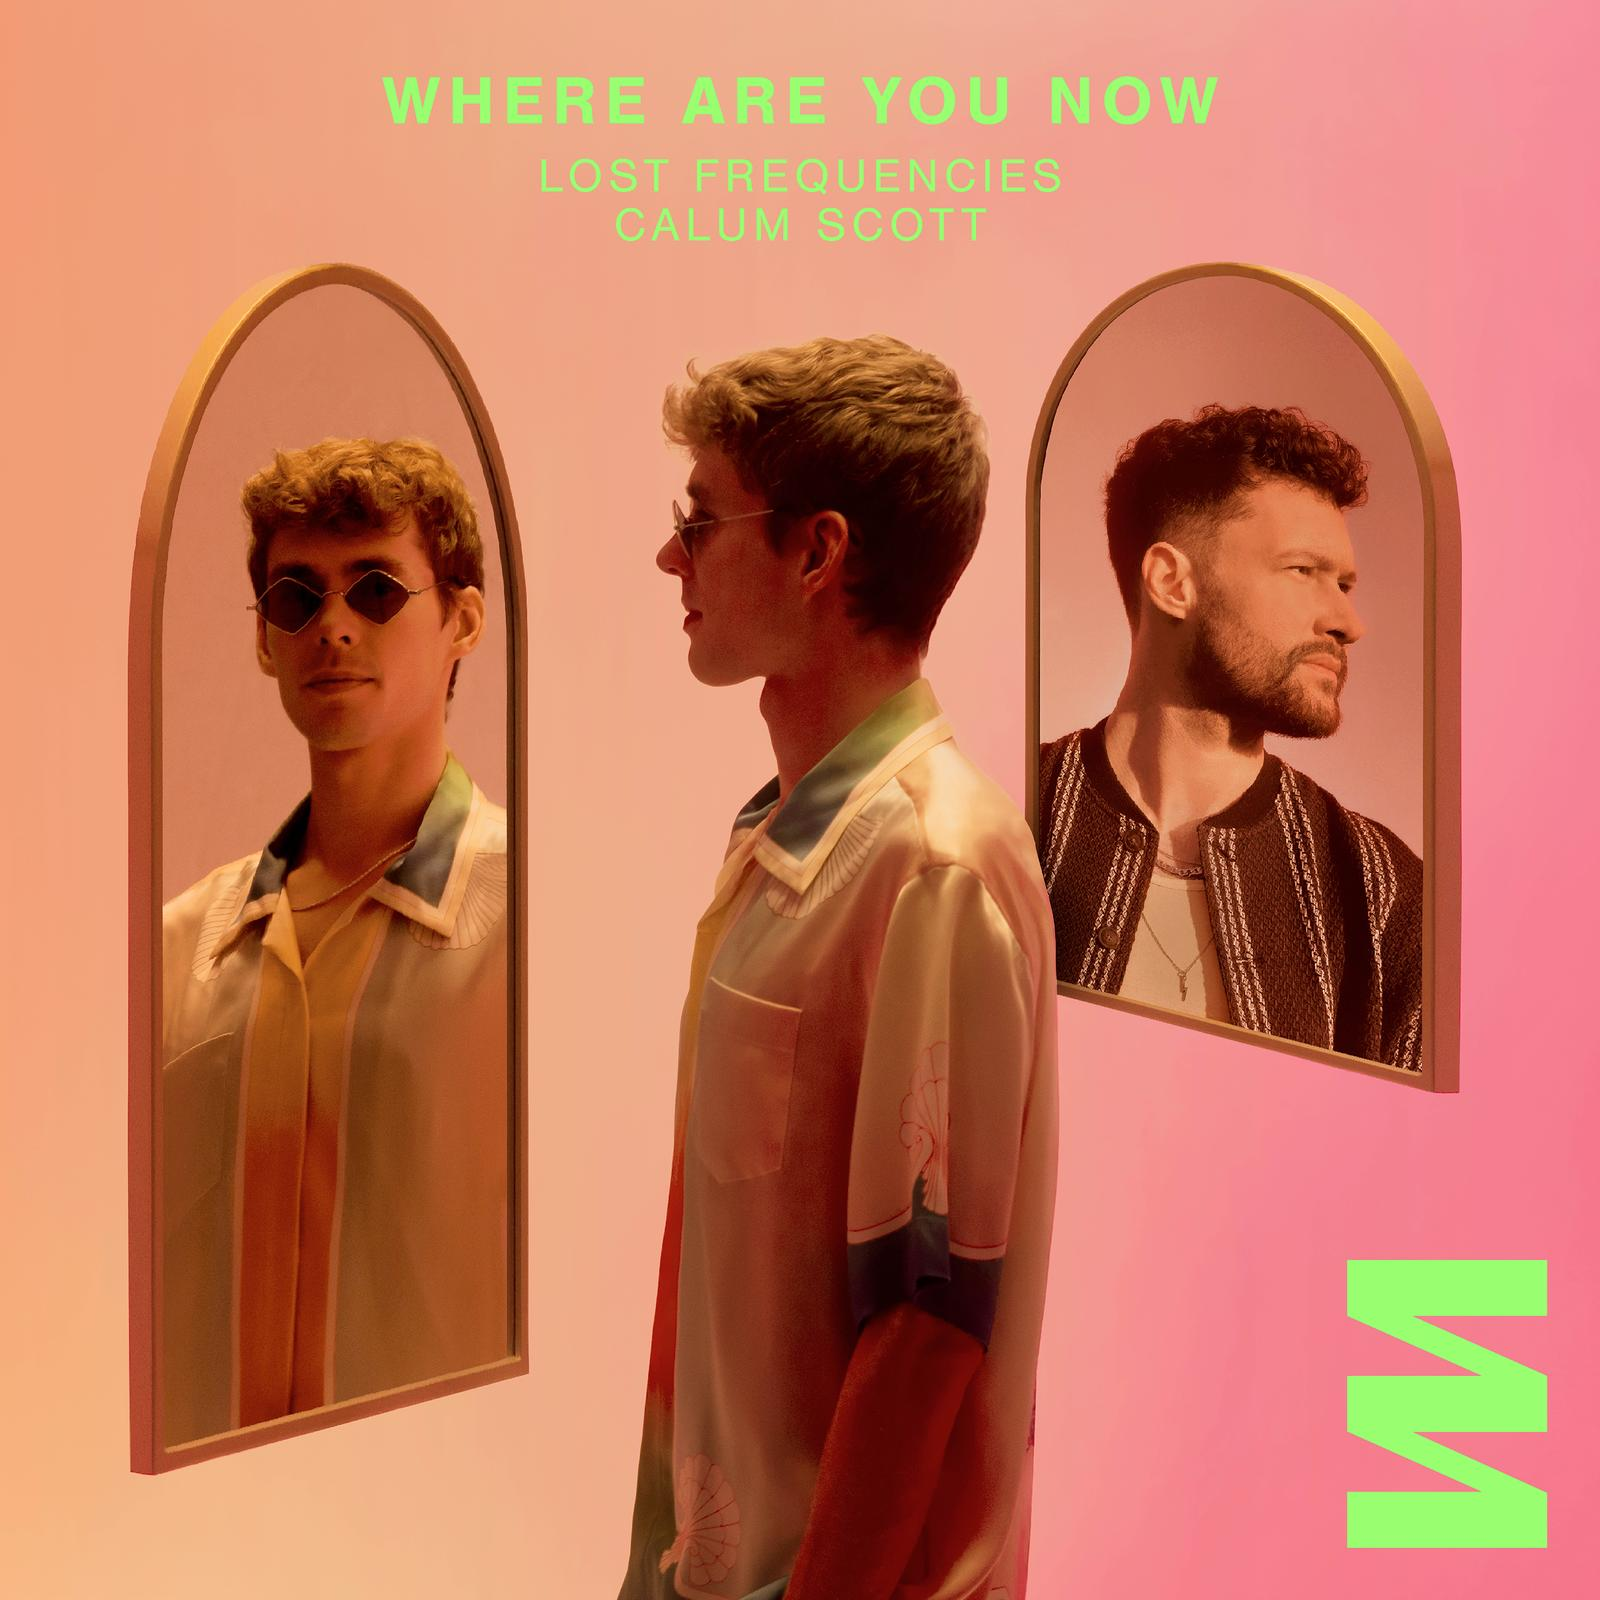 Where Are You Now - Lost Frequencies, Calum Scott | EPDM